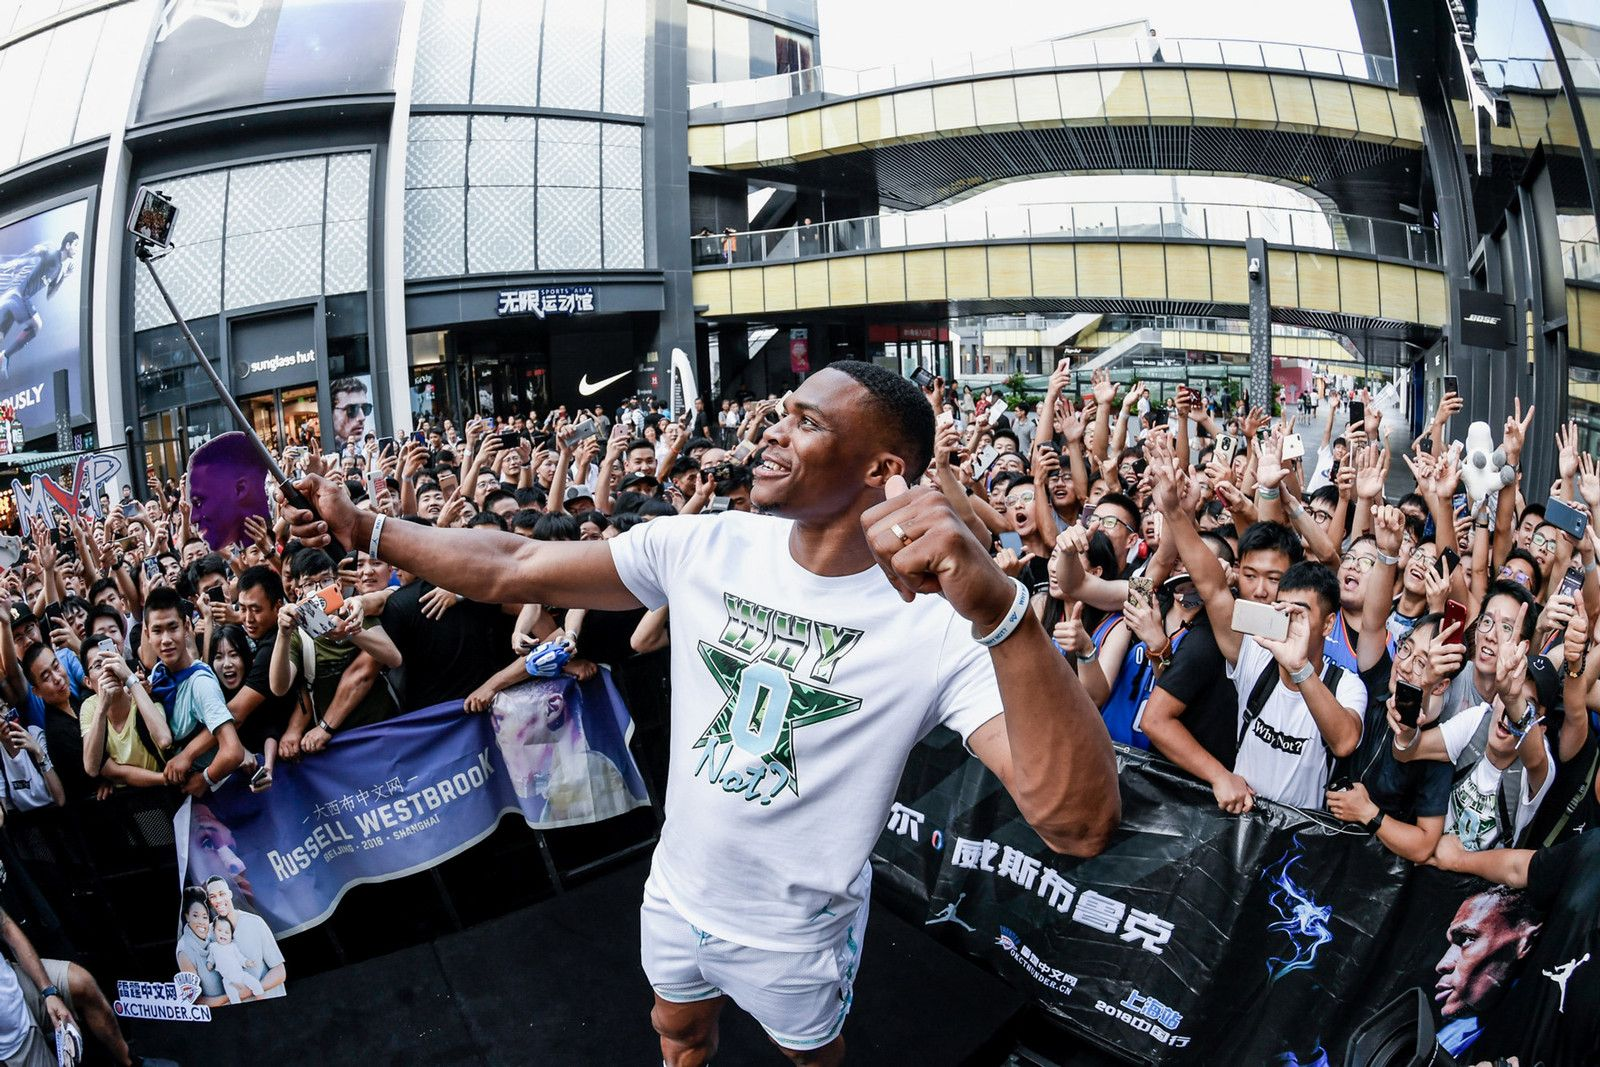 Russell Westbrook Why Not  Shanghai Interview  thatdope  sneakers  luxury   dope  fashion  trending c7559bb14a